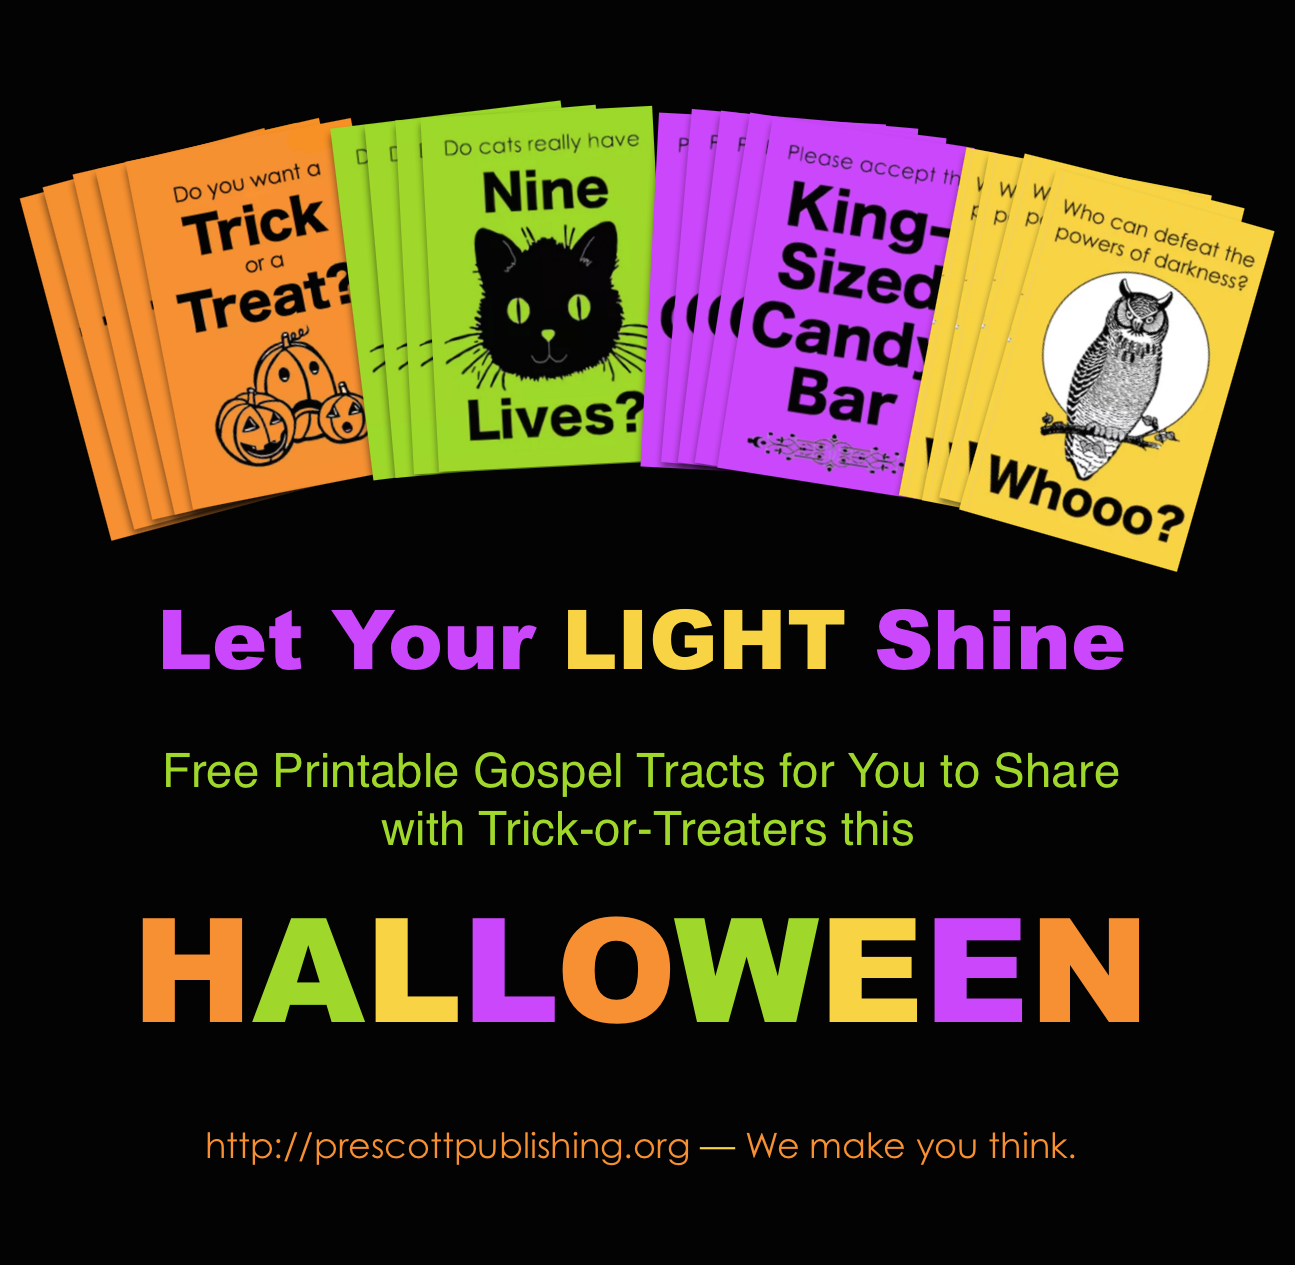 Mailbag: Free Printable Trick-or-Treat Tracts